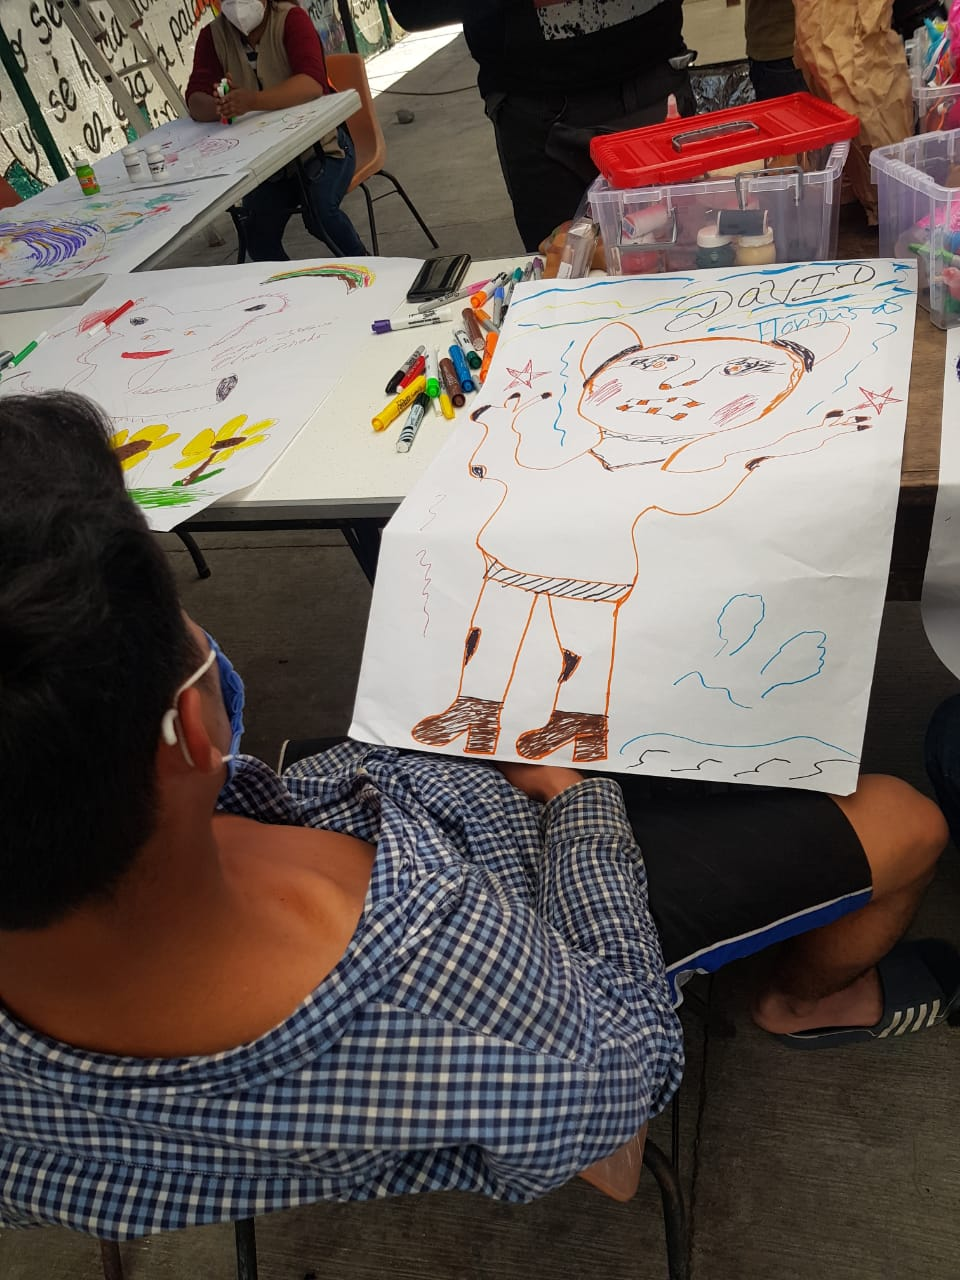 A man sits back in his chair looking at a picture he drew of a person at a table full of markers and other art supplies